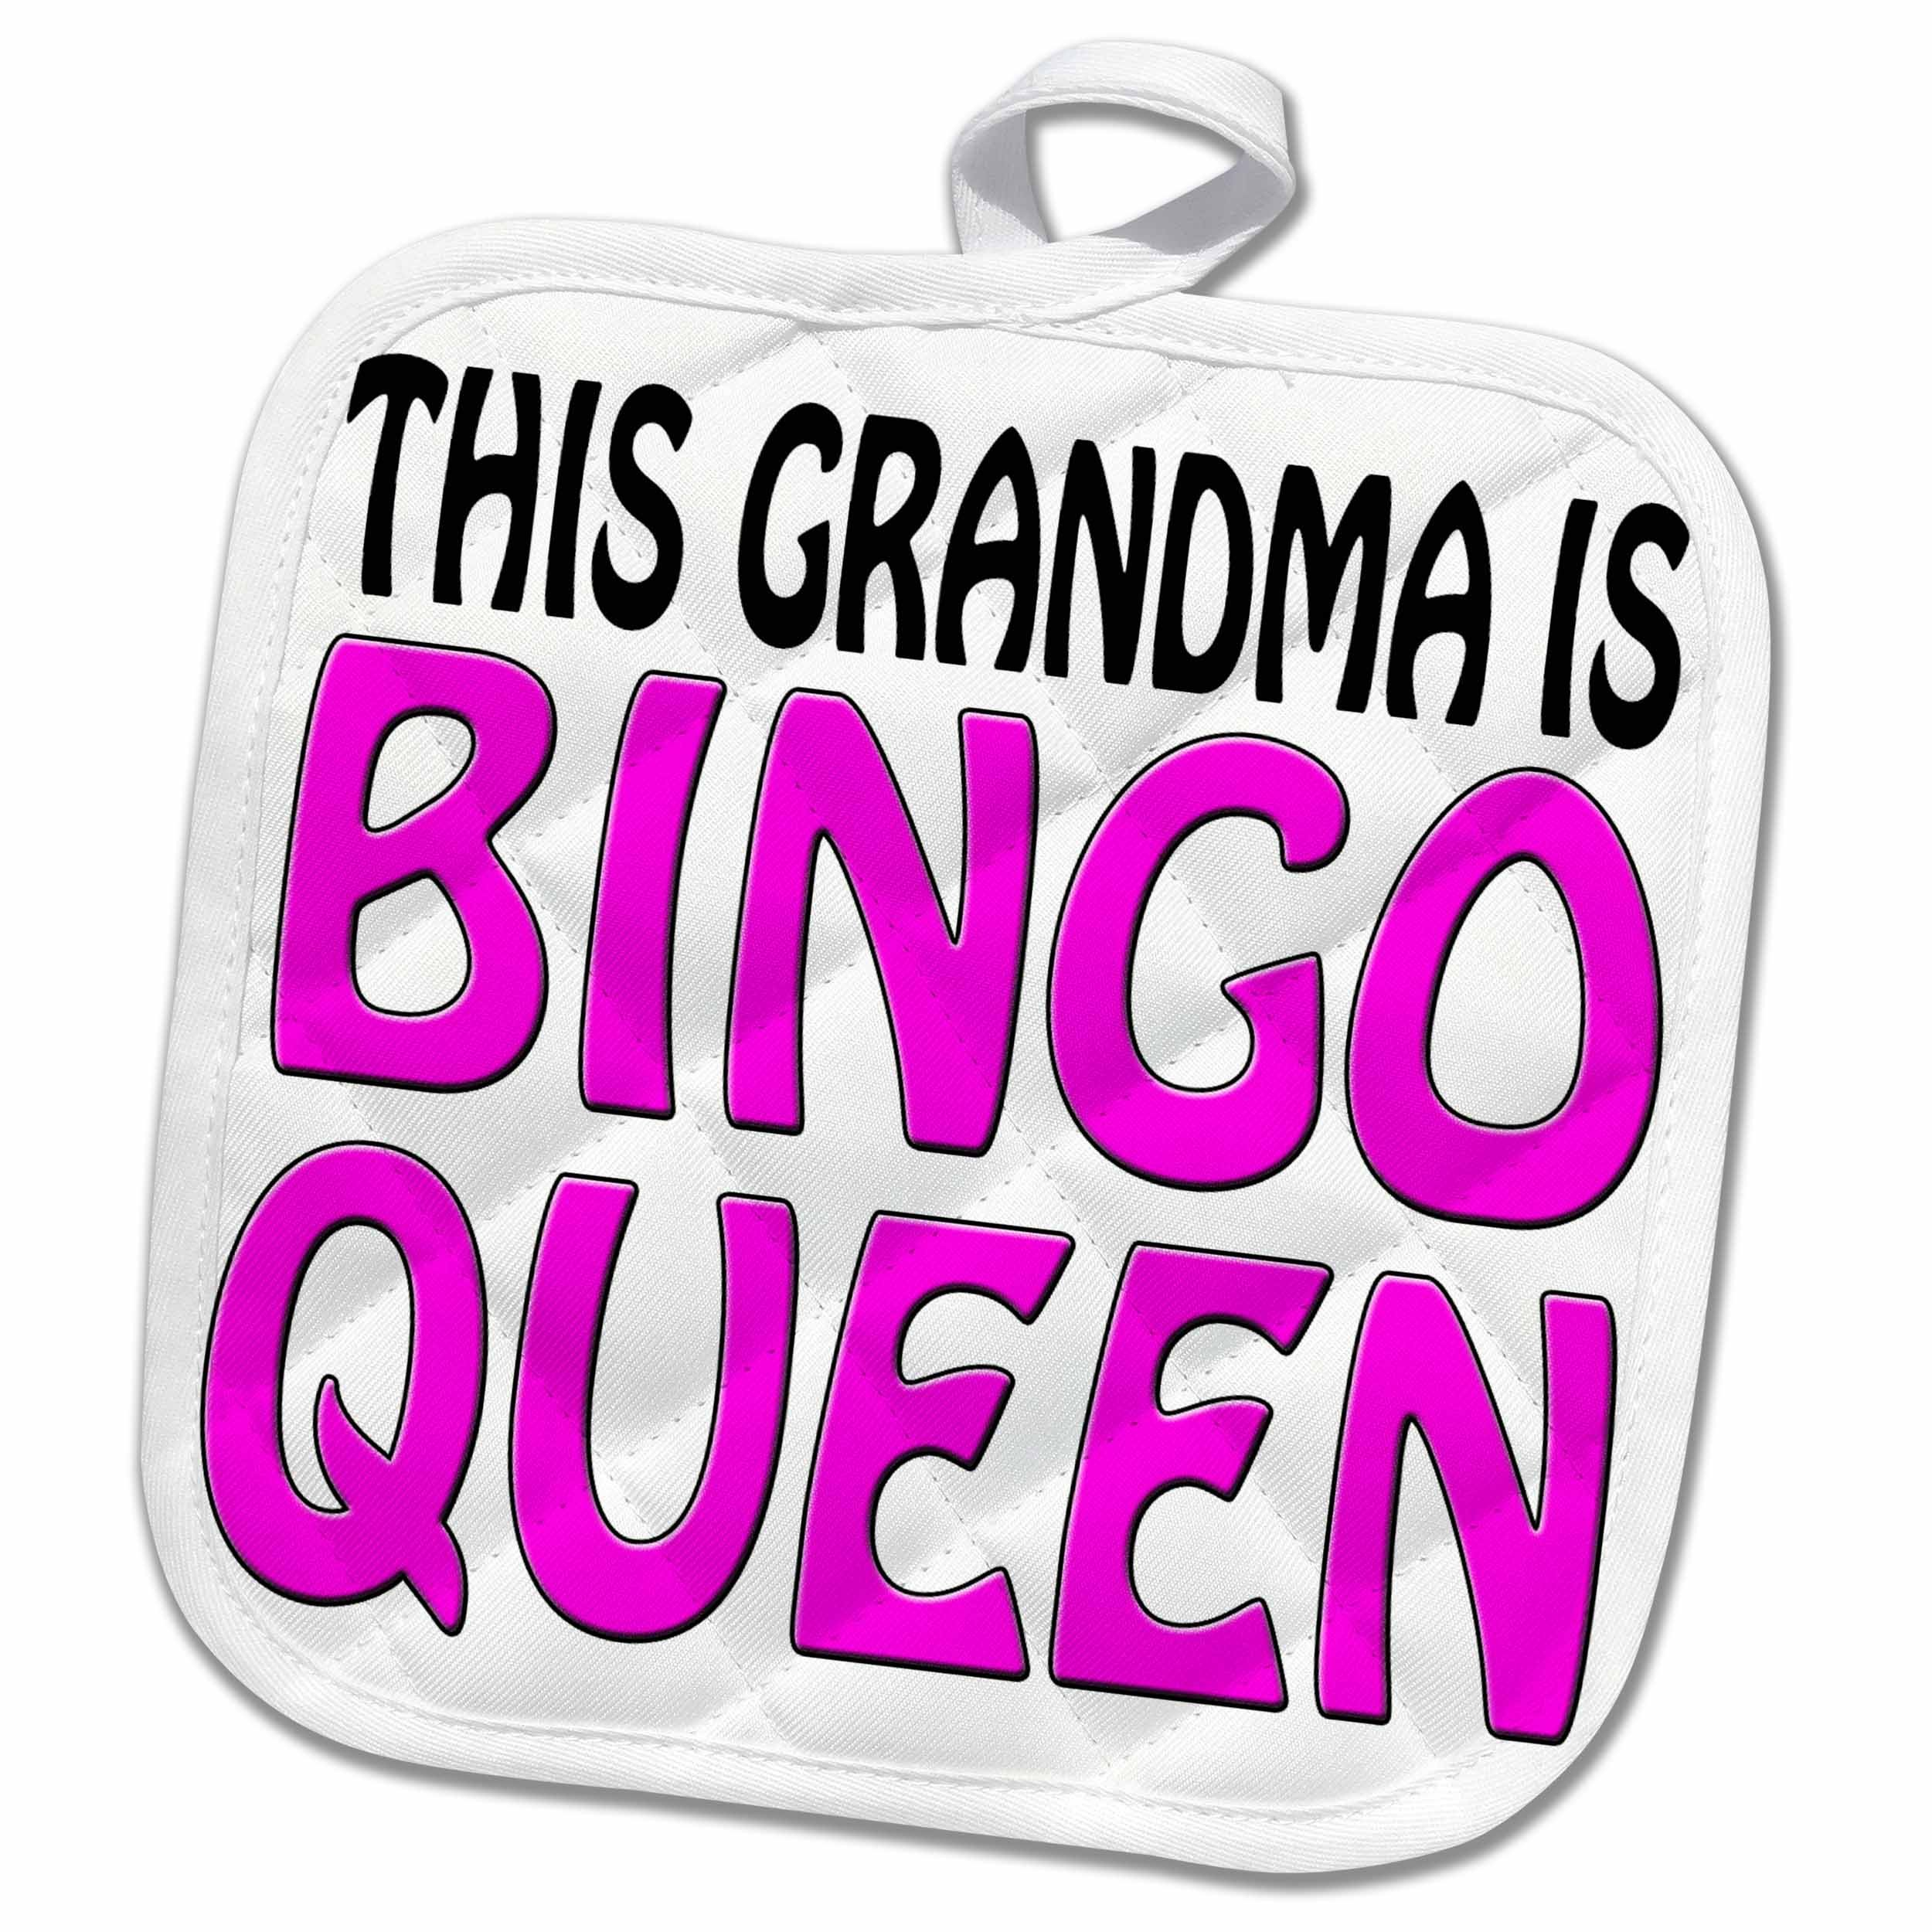 3dRose EvaDane - Funny Quotes - This grandma is bingo queen, Hot pink, 8x8 Potholder (phl_149770_1) by 3dRose